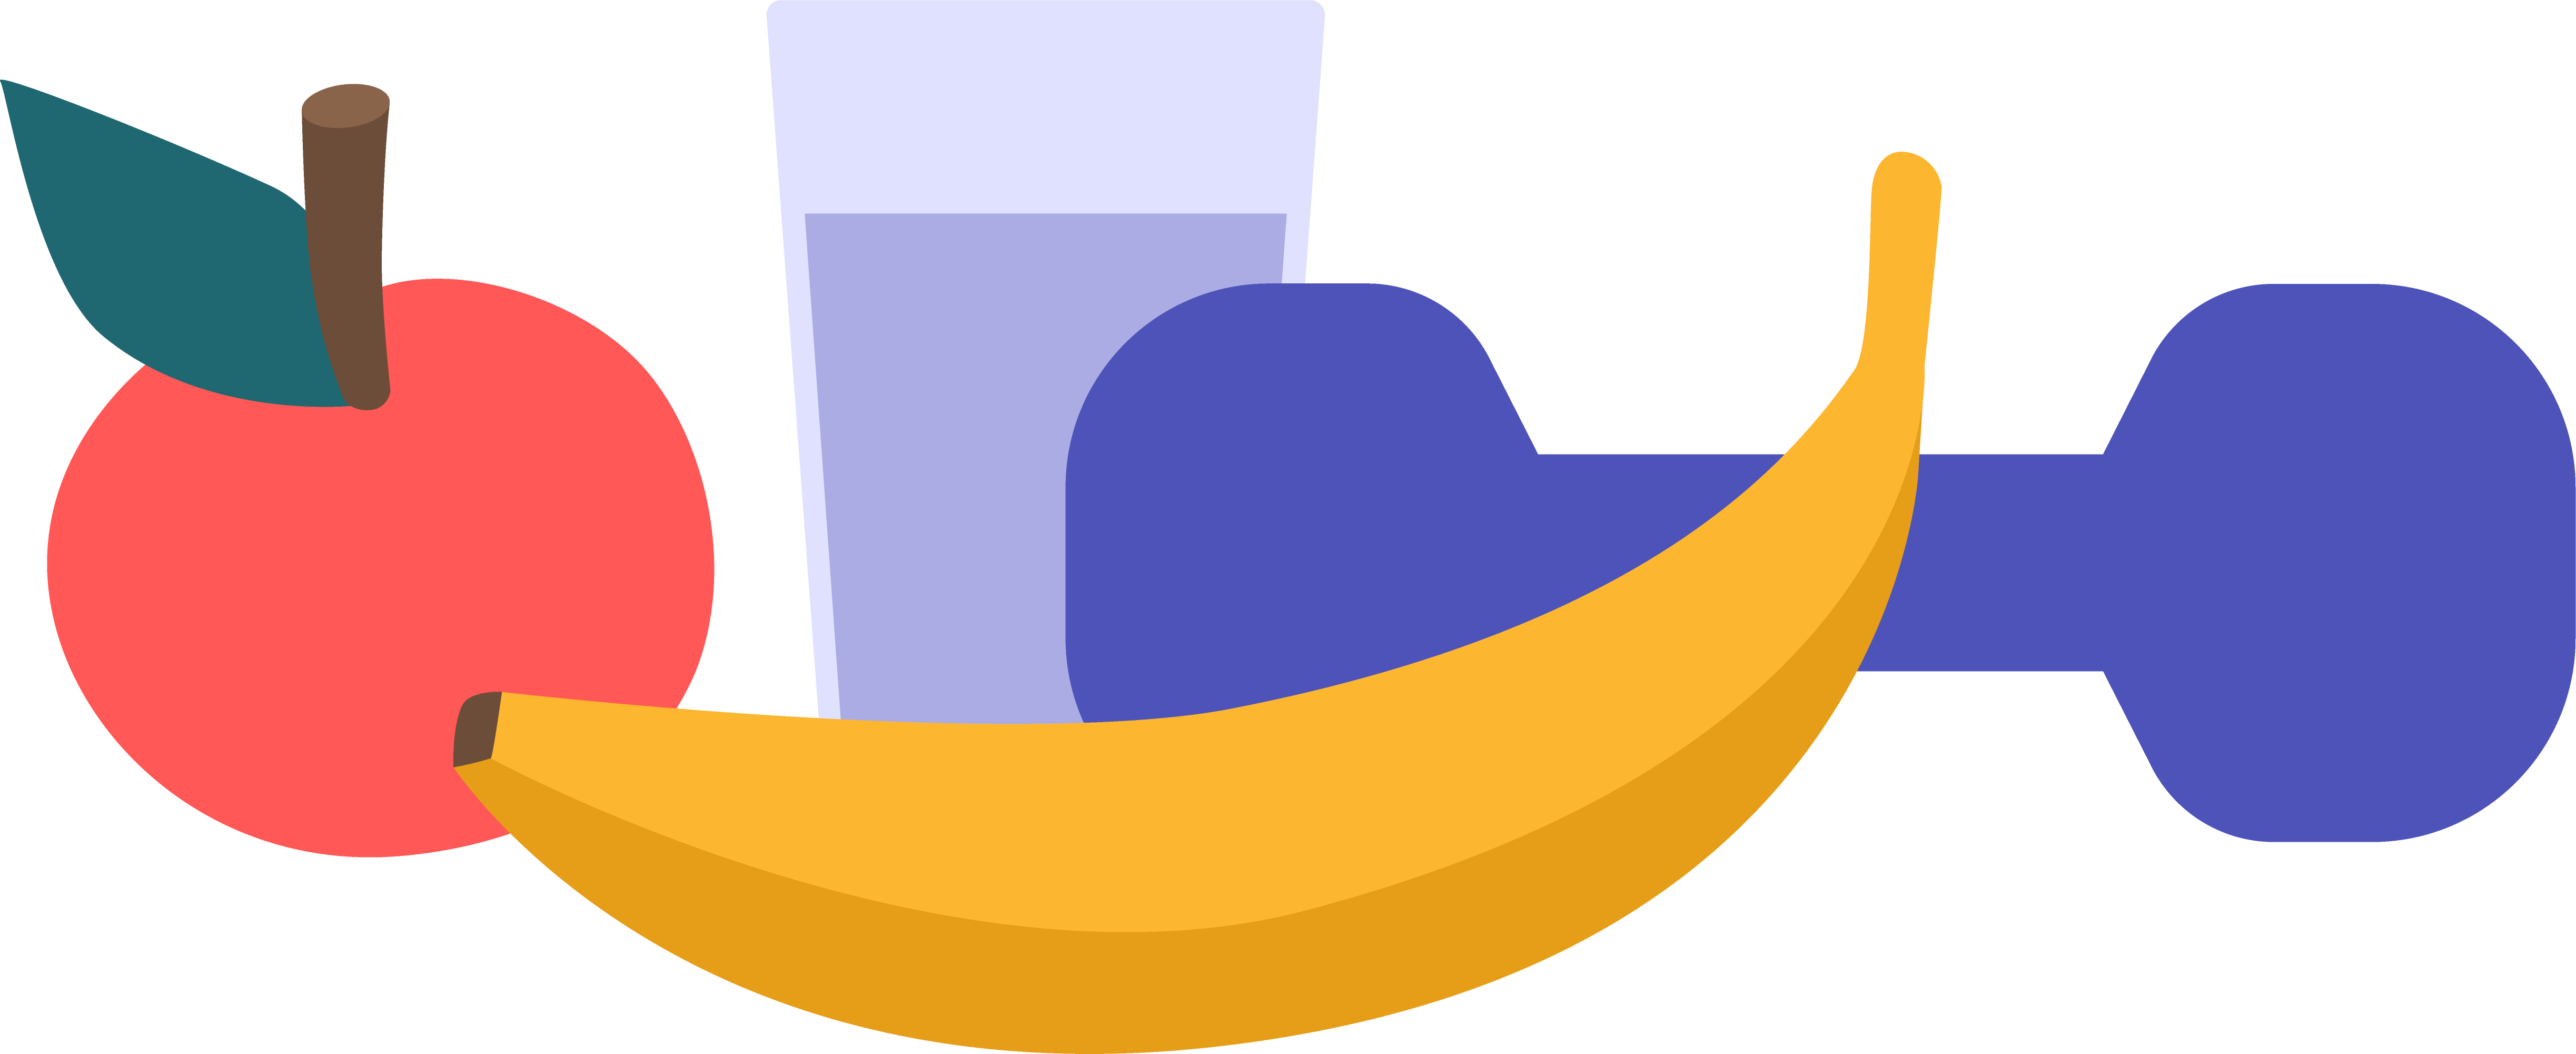 An apple, banana,hand weight, and glass of water